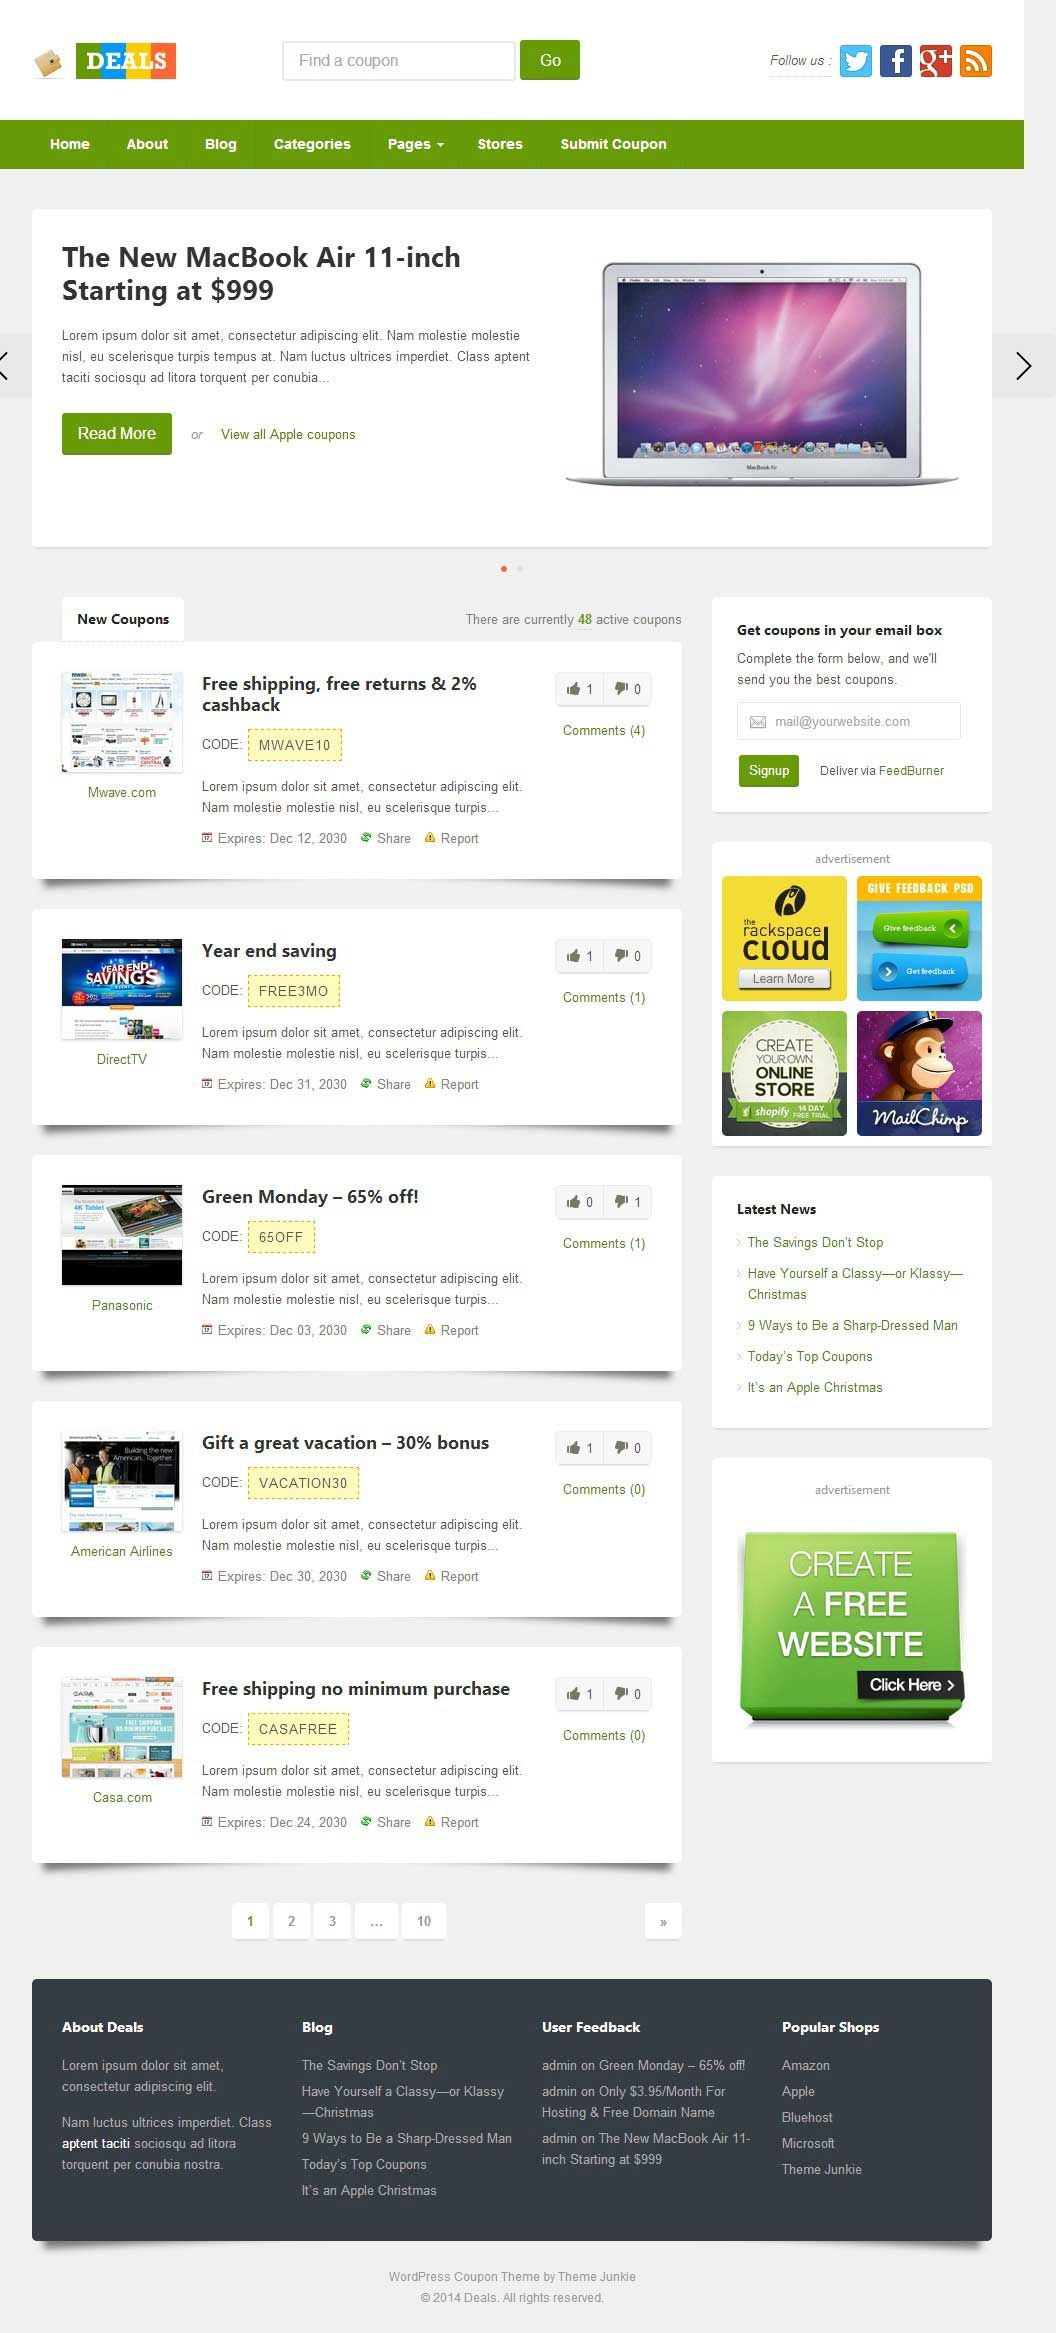 Deals WordPress Coupon Themes (With images) Wordpress